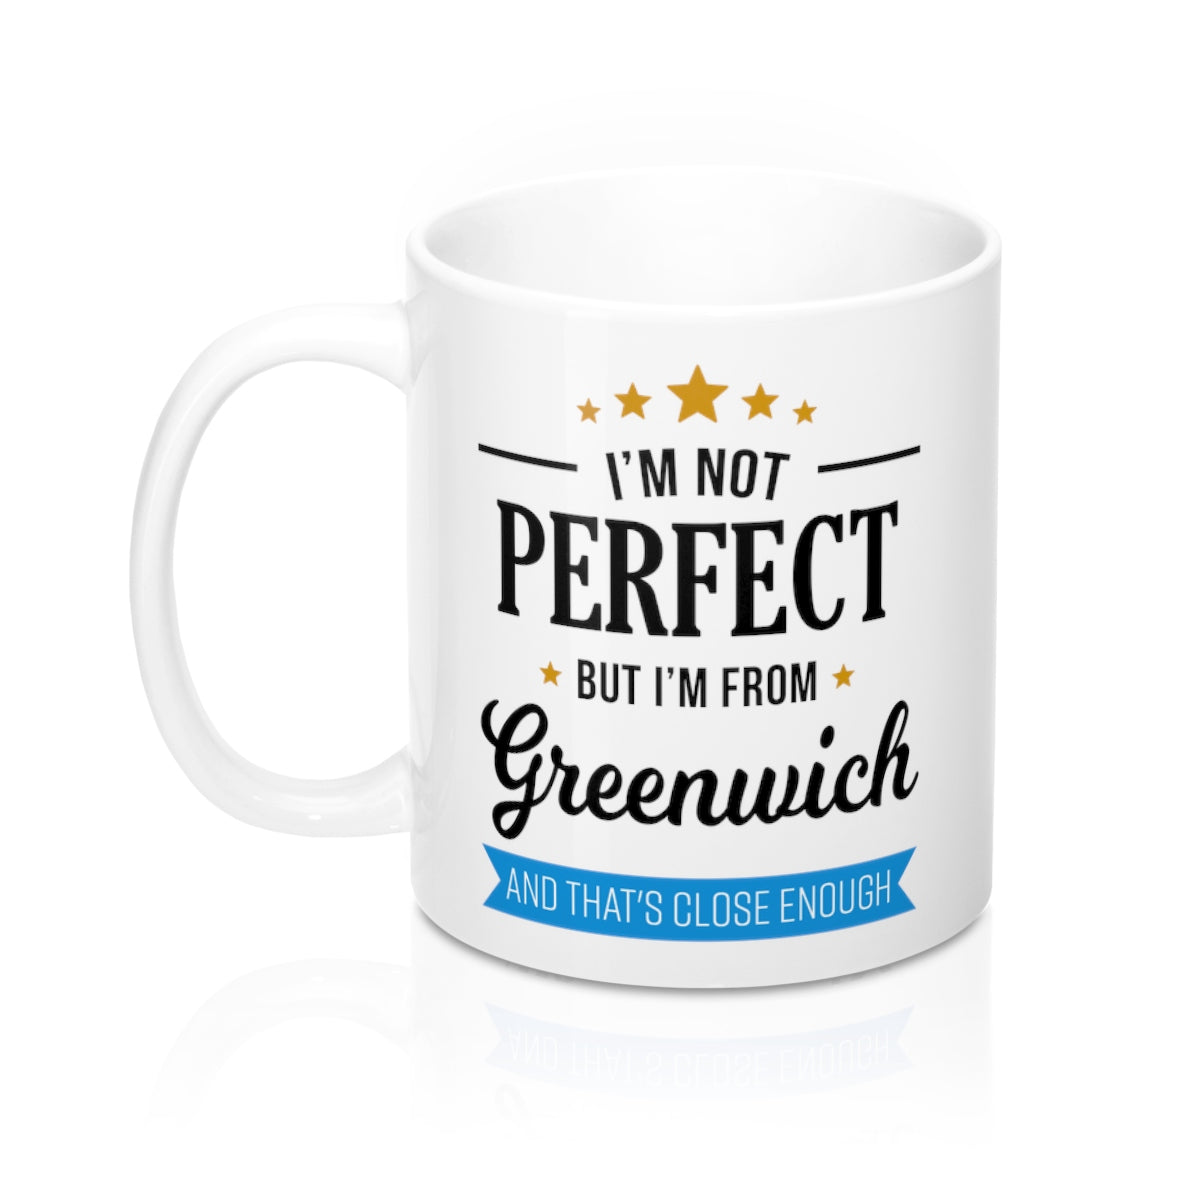 I'm Not Perfect But I'm From Greenwich Mug